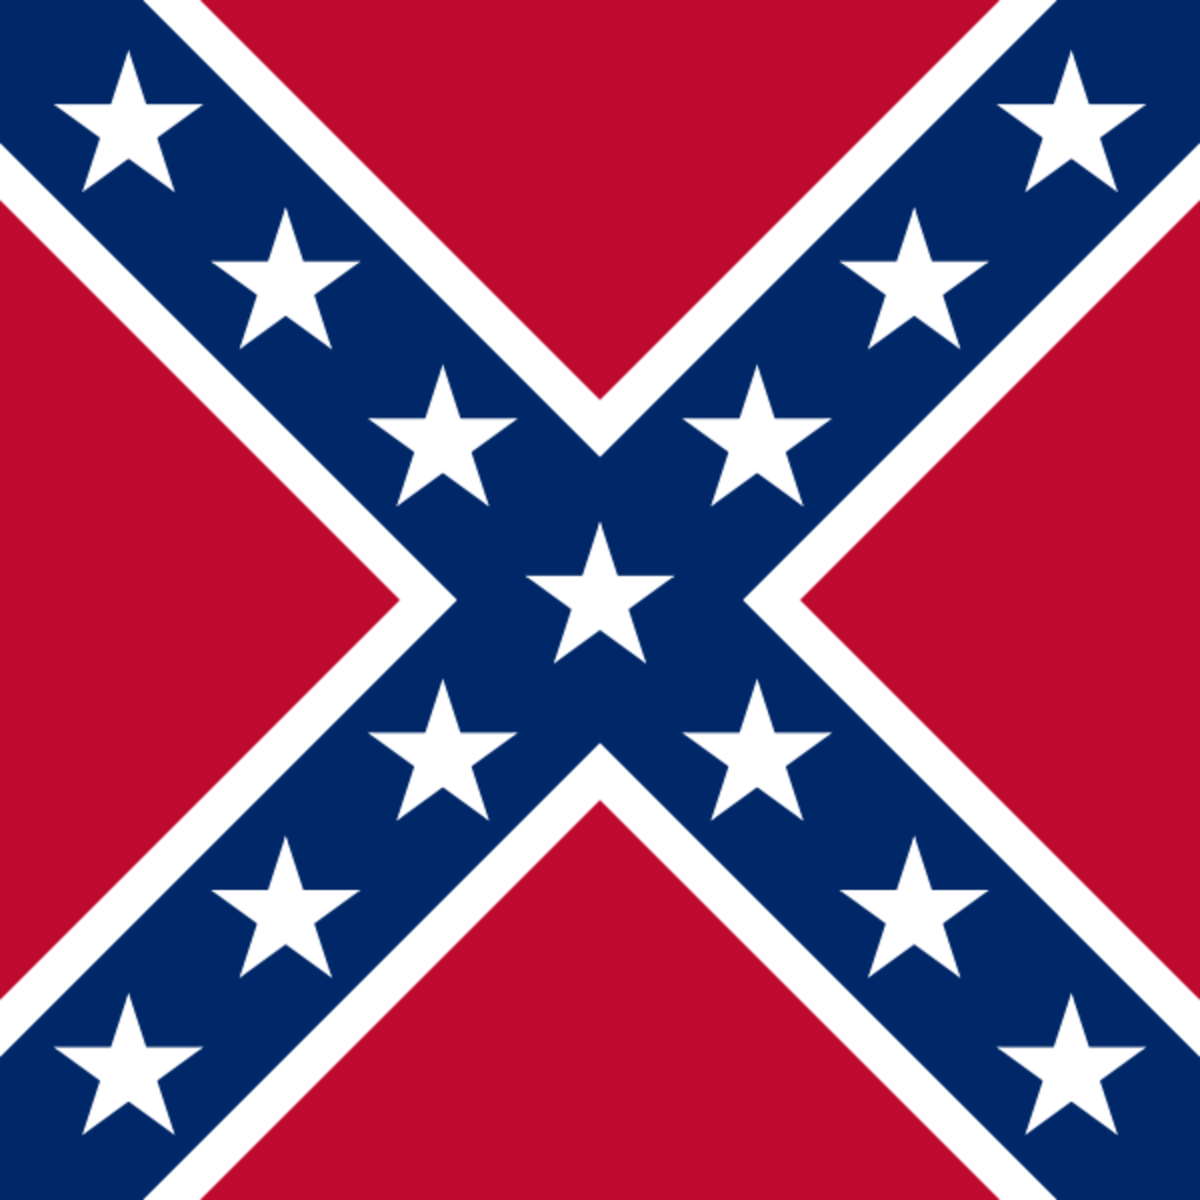 The Confederate States of America: What if History?